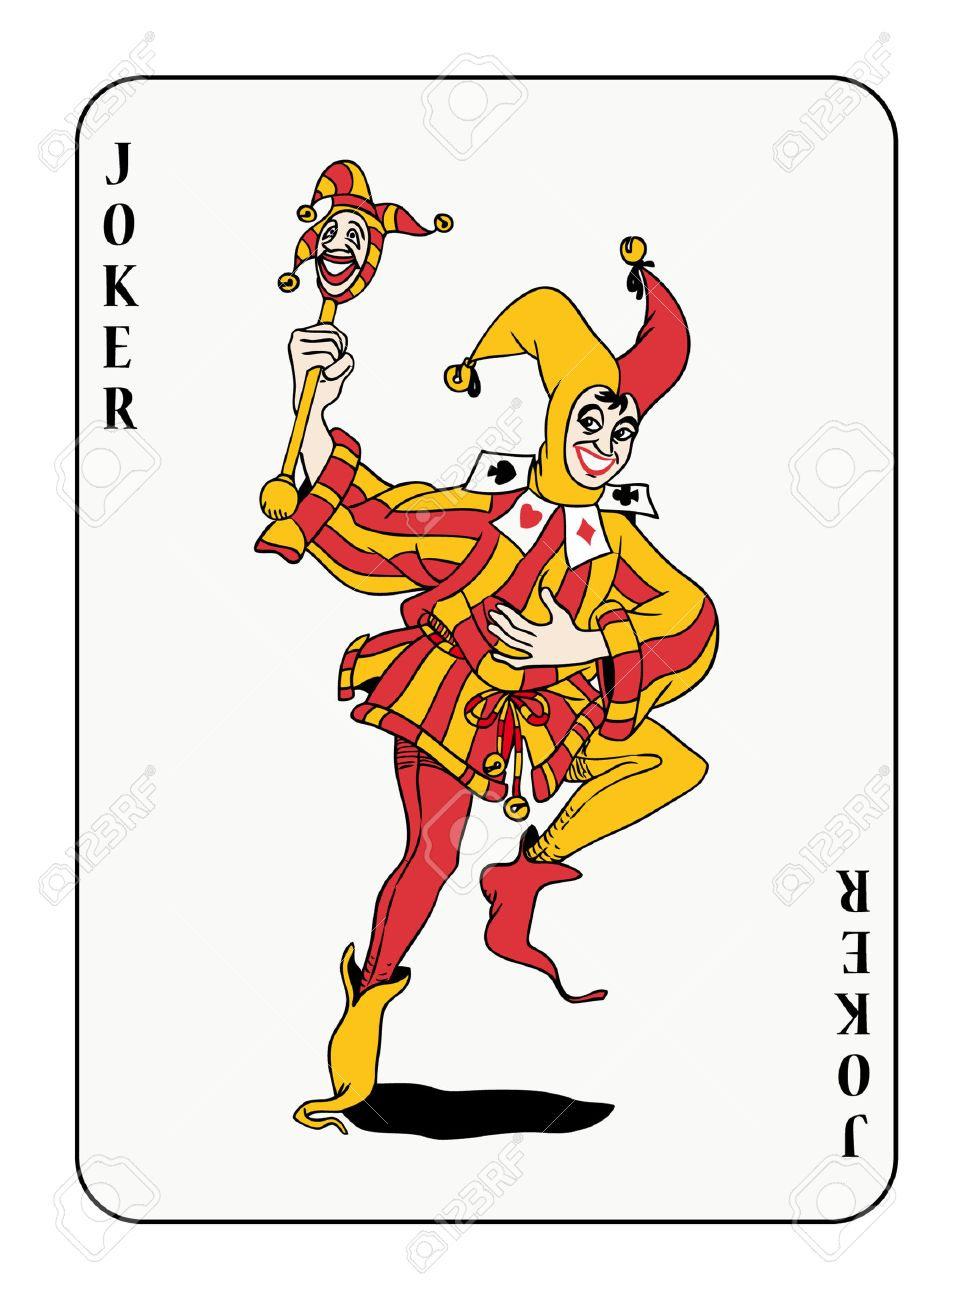 joker playing card Stock Vector - 3578606